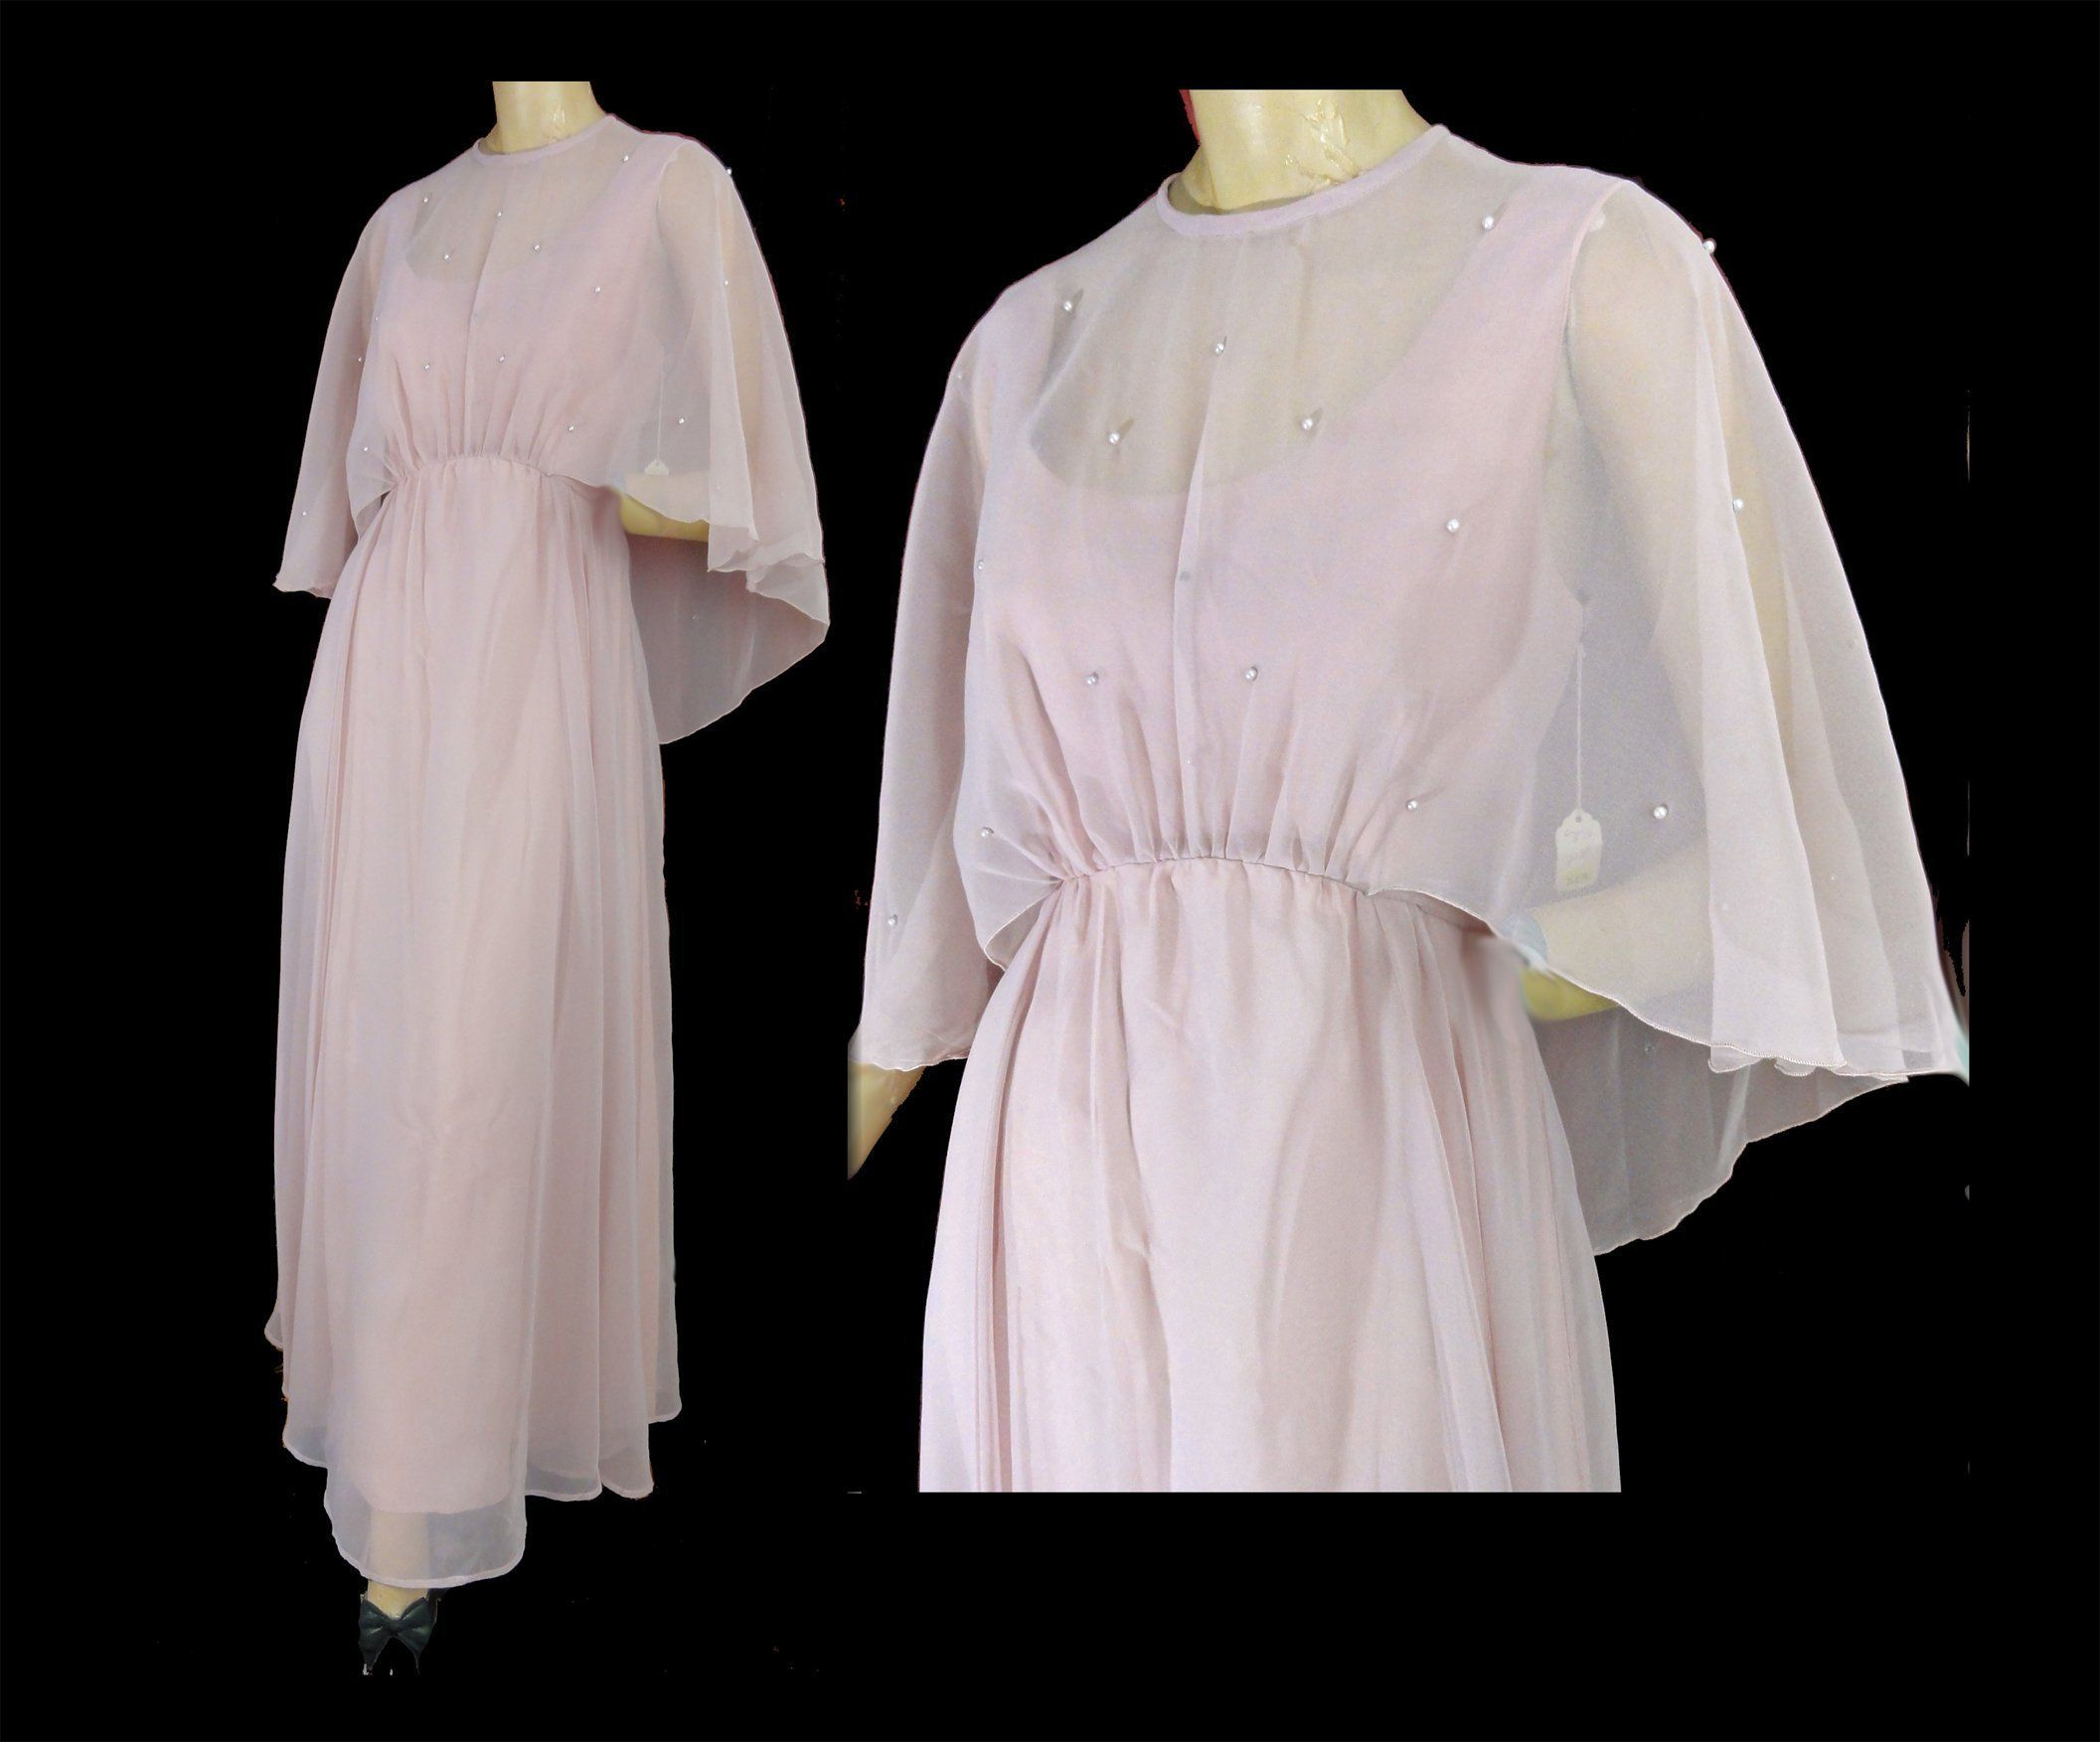 Vintage 70s Orchid Pink Formal Evening Gown Chiffon Cape Disco Etsy Evening Gowns Formal Evening Gowns Beautiful Dresses [ 1753 x 2113 Pixel ]